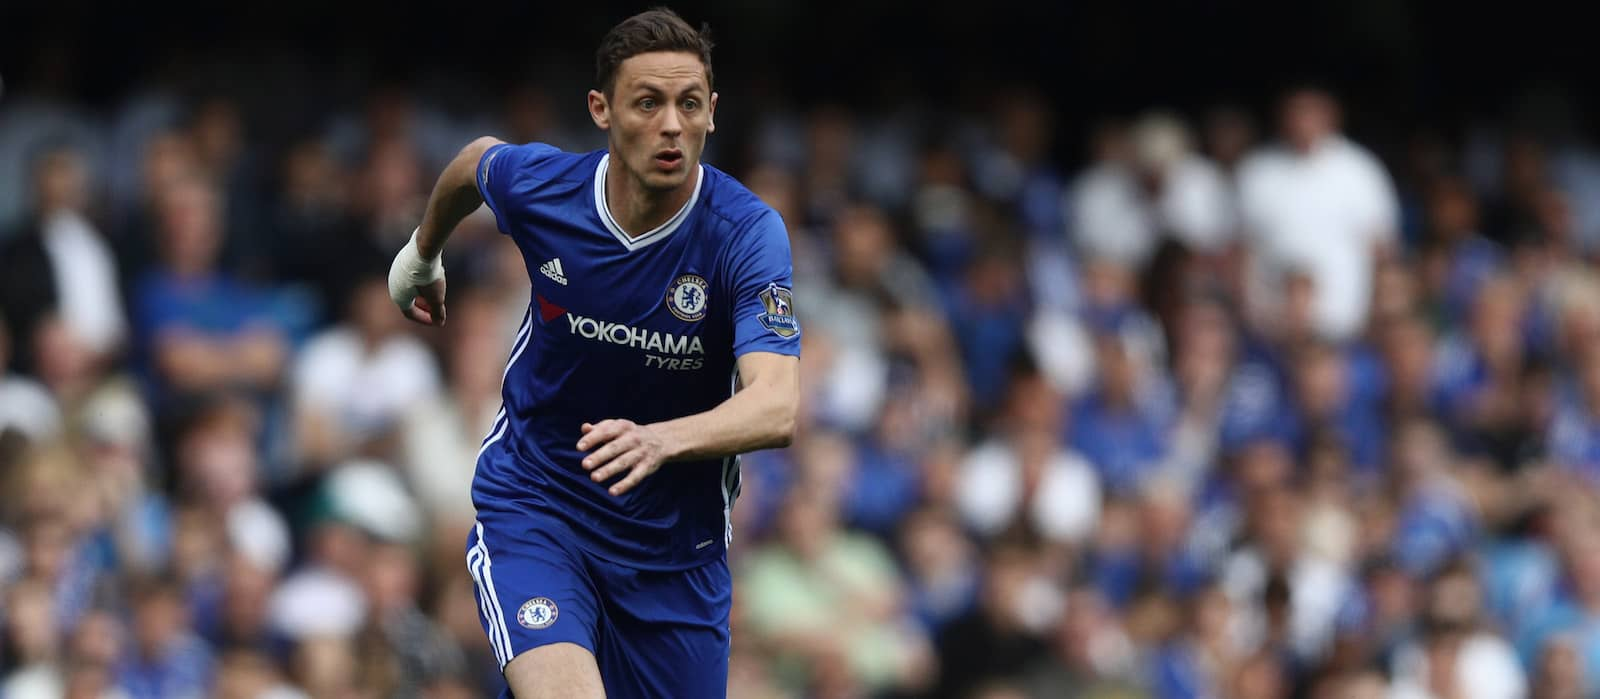 Manchester United contact Chelsea over Nemanja Matic